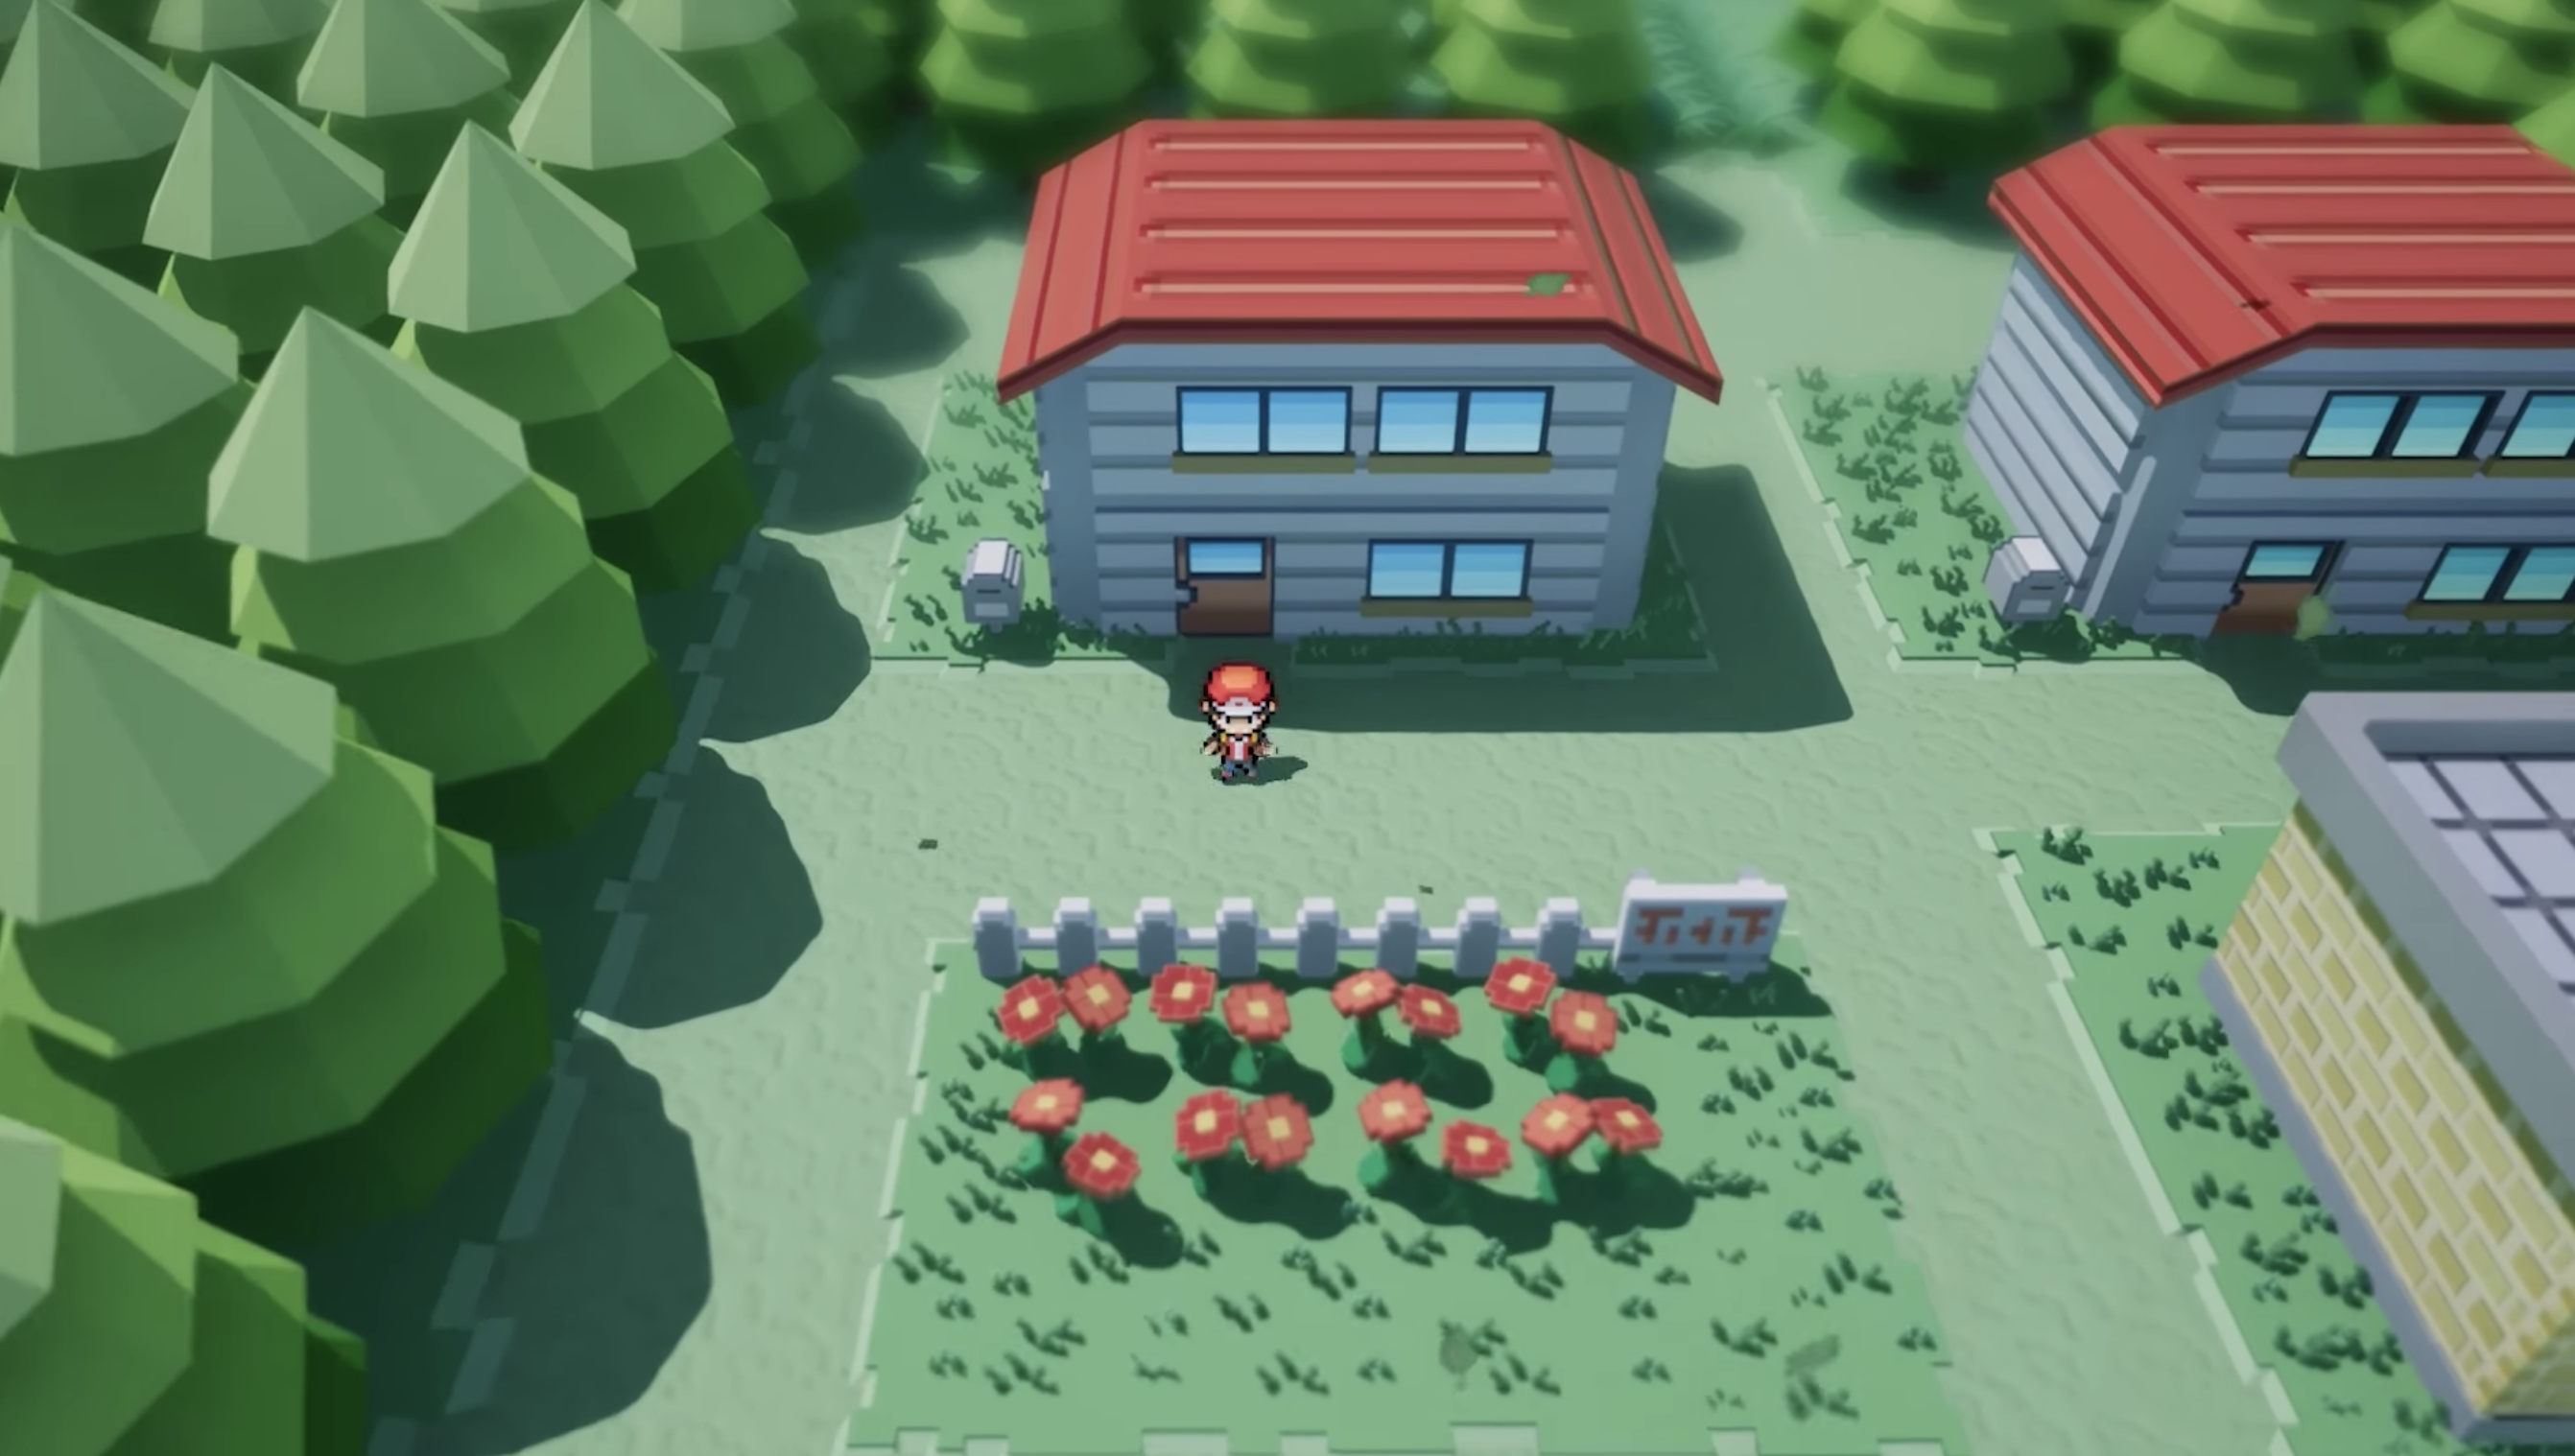 Here is How Pokemon's Pallet Town Would Look in Unreal Engine